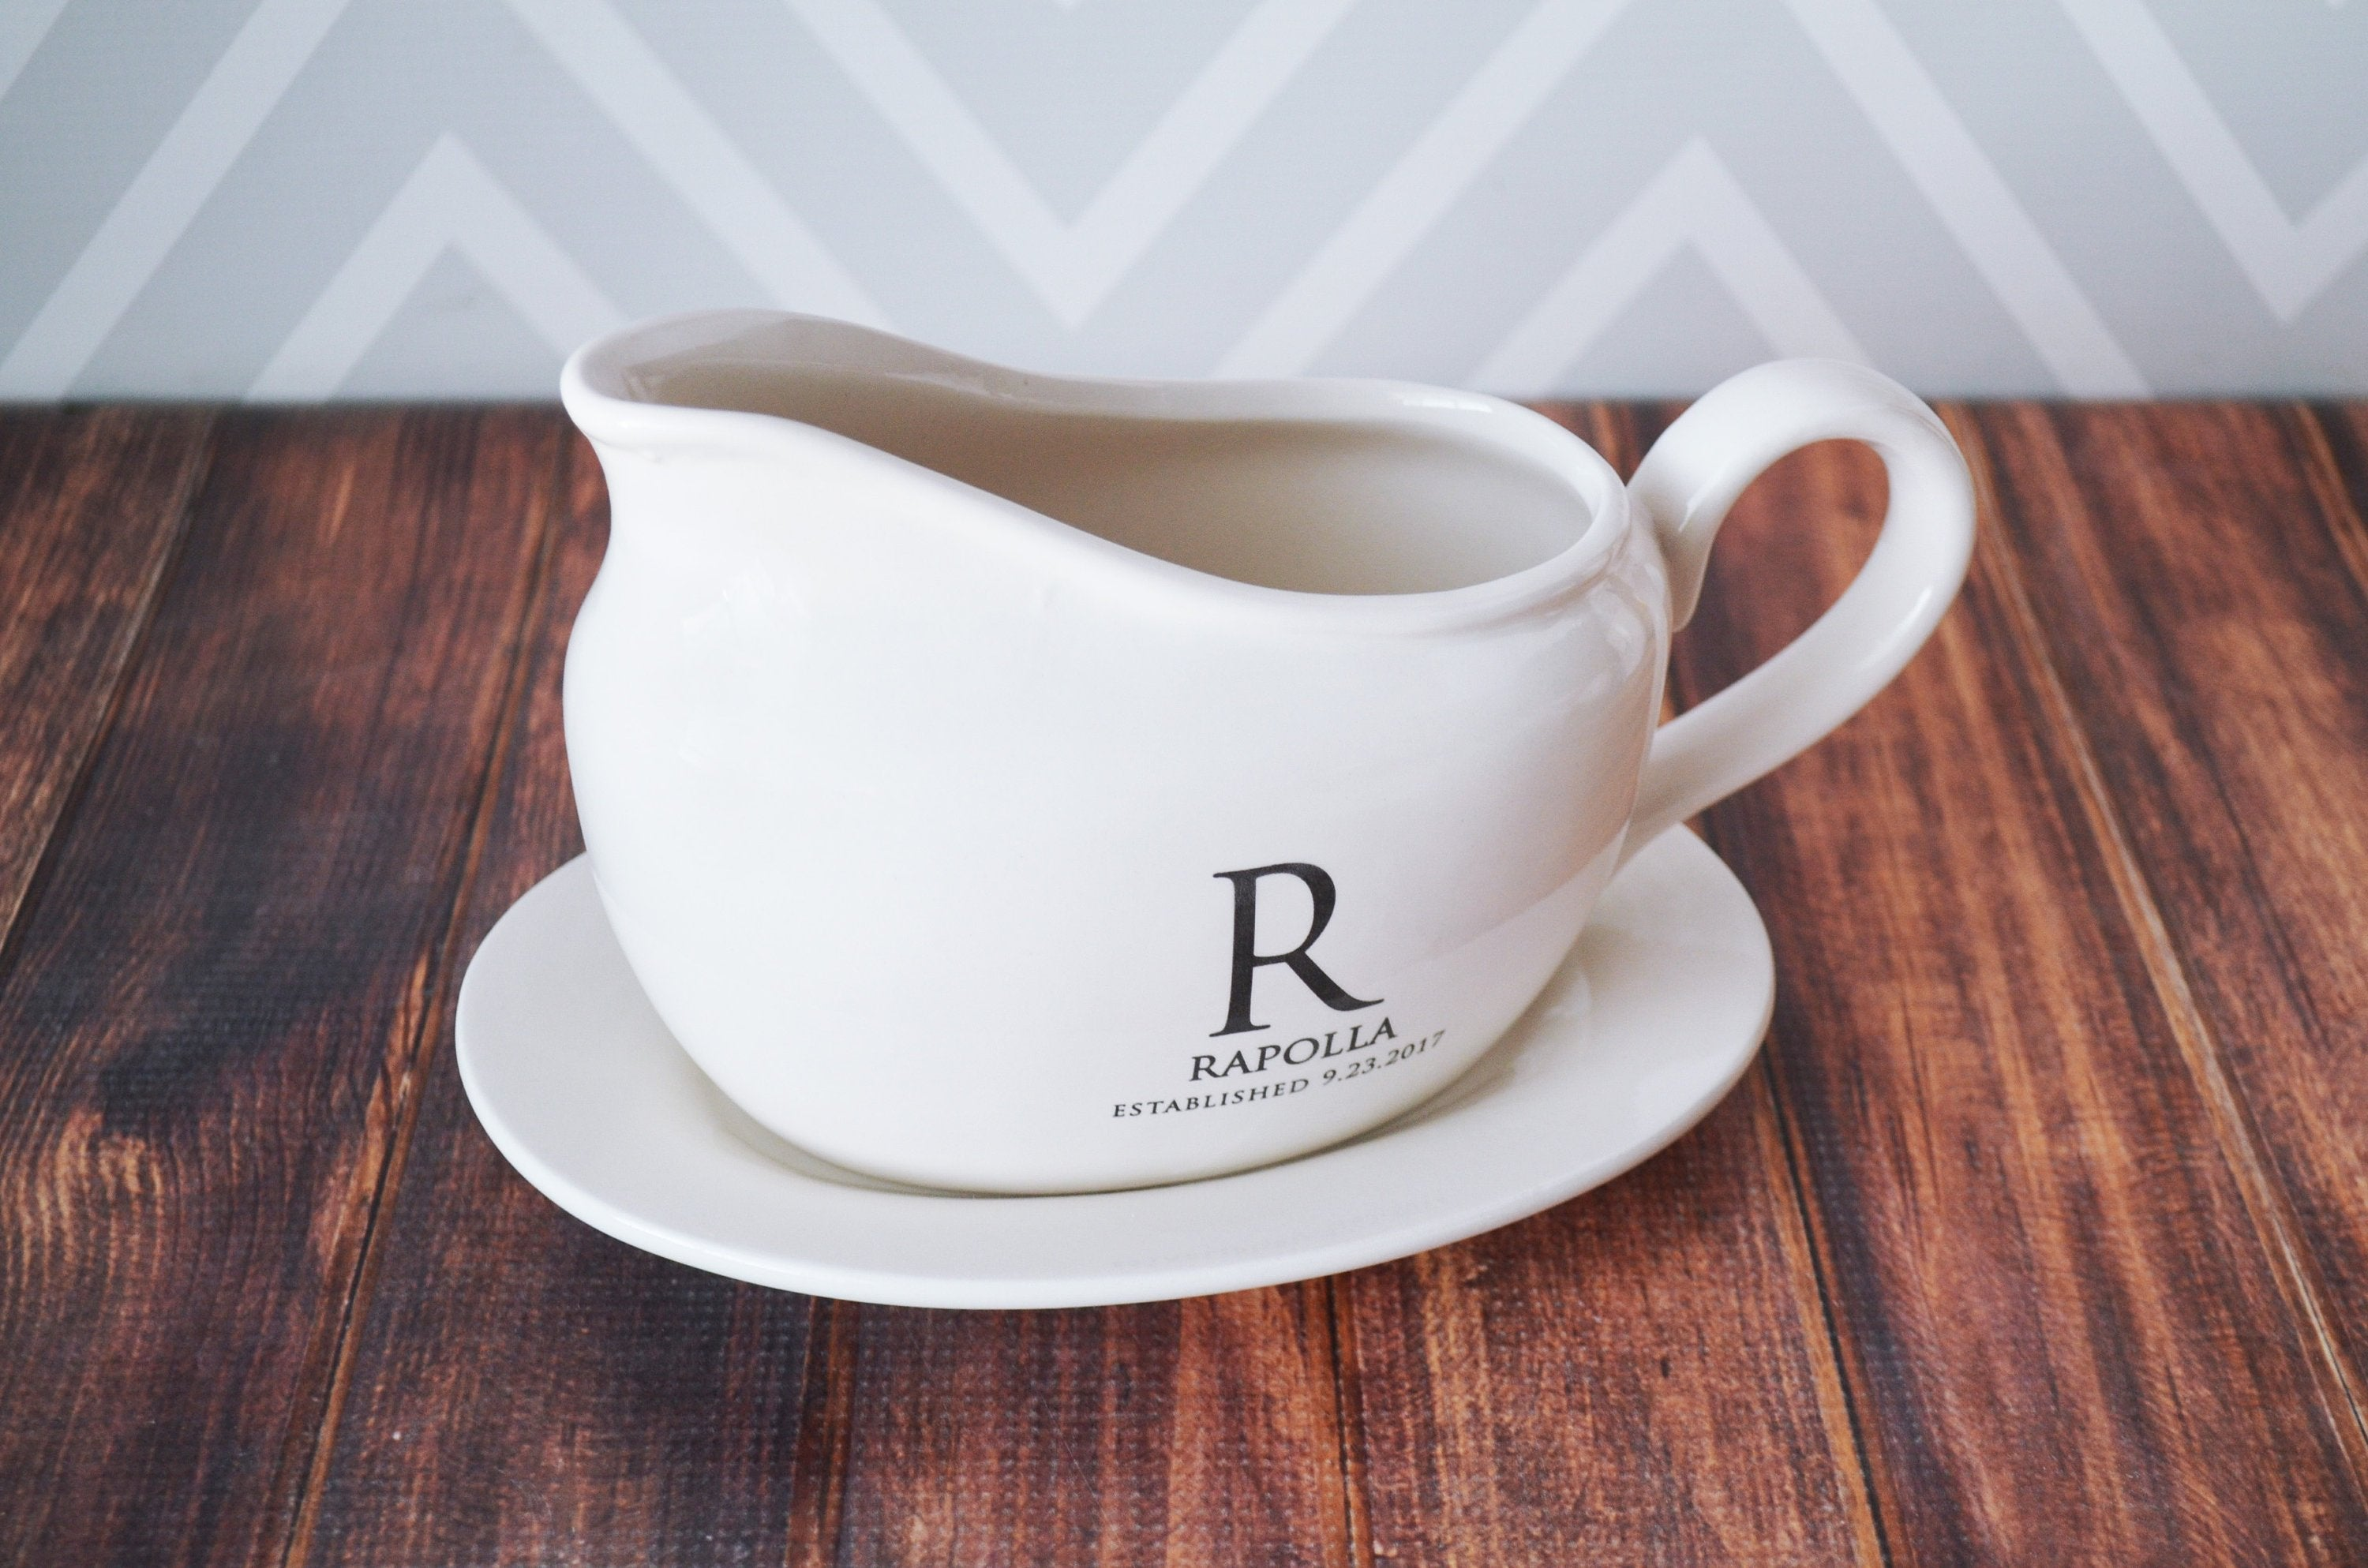 ... Housewarming Gifts Gravy Boat with Underplate Wedding Gifts Marriage Gifts Anniversary Gifts Housewarming Gifts ... & Gravy Boat with Underplate Wedding Gifts Marriage Gifts ...